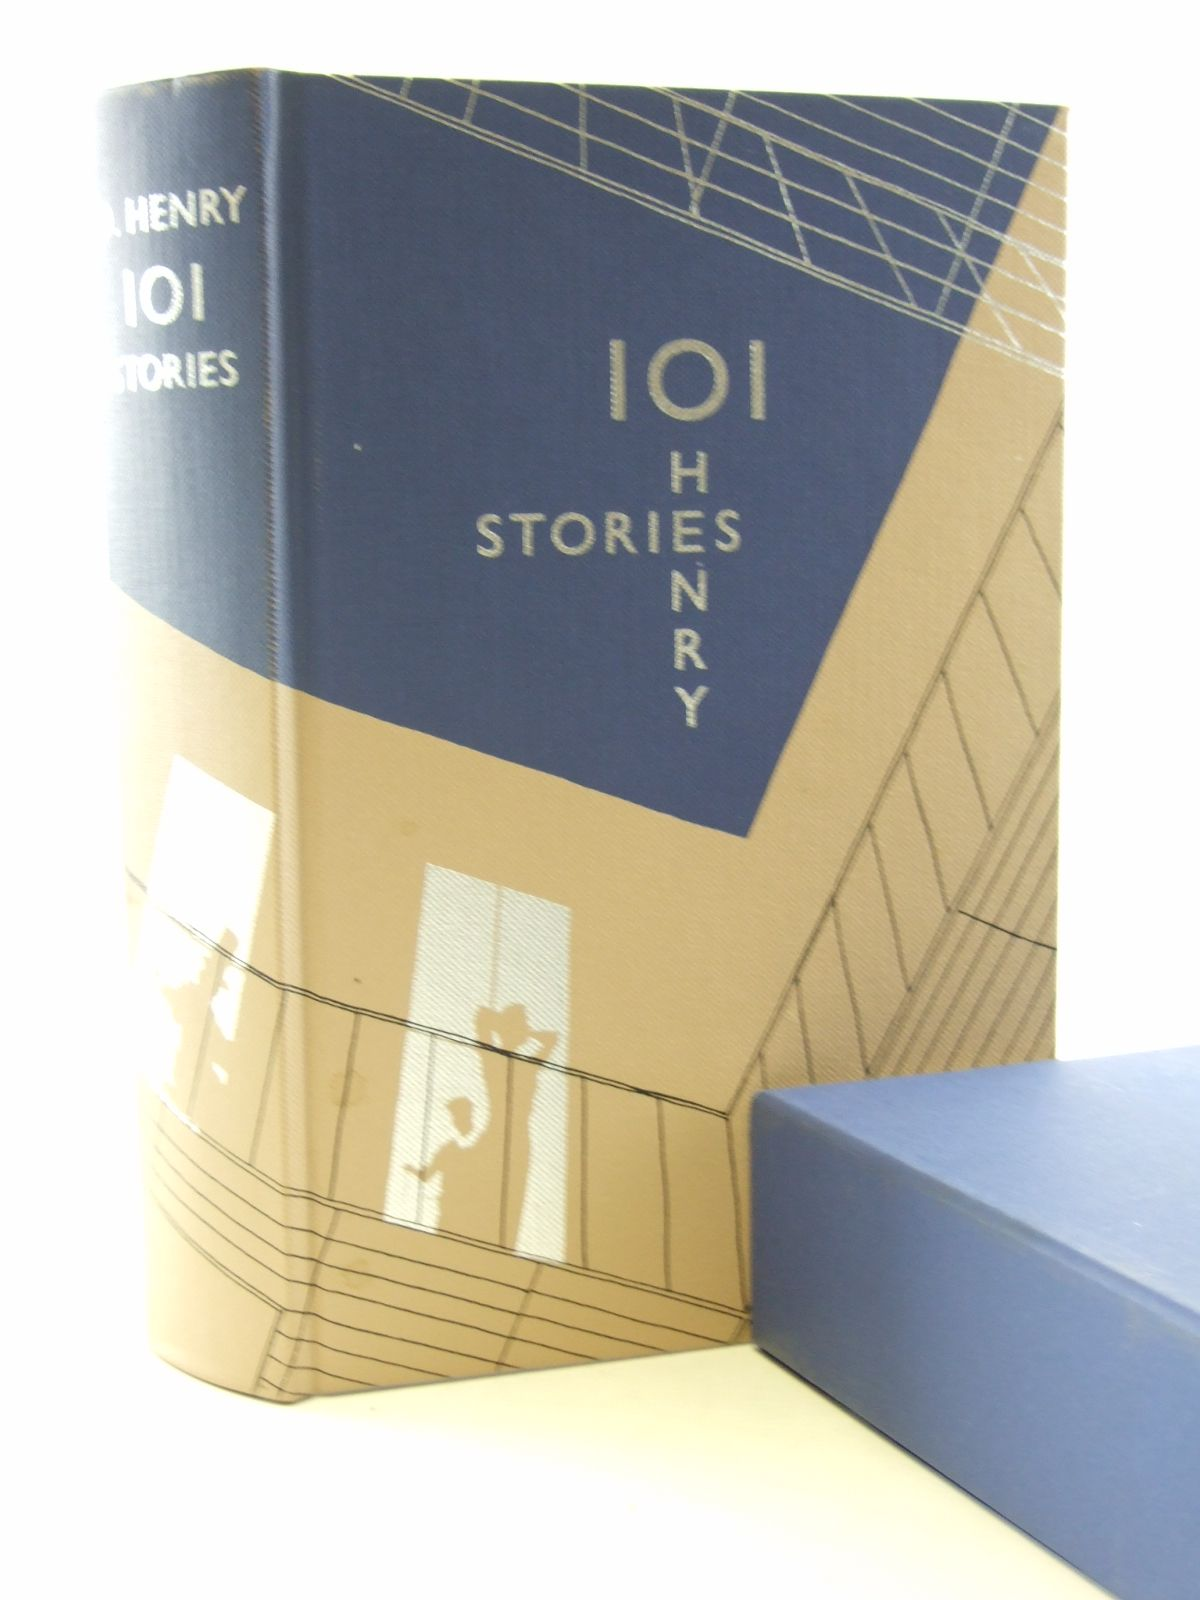 Photo of 101 STORIES written by Henry, O. illustrated by Waters, Rod published by Folio Society (STOCK CODE: 2107835)  for sale by Stella & Rose's Books